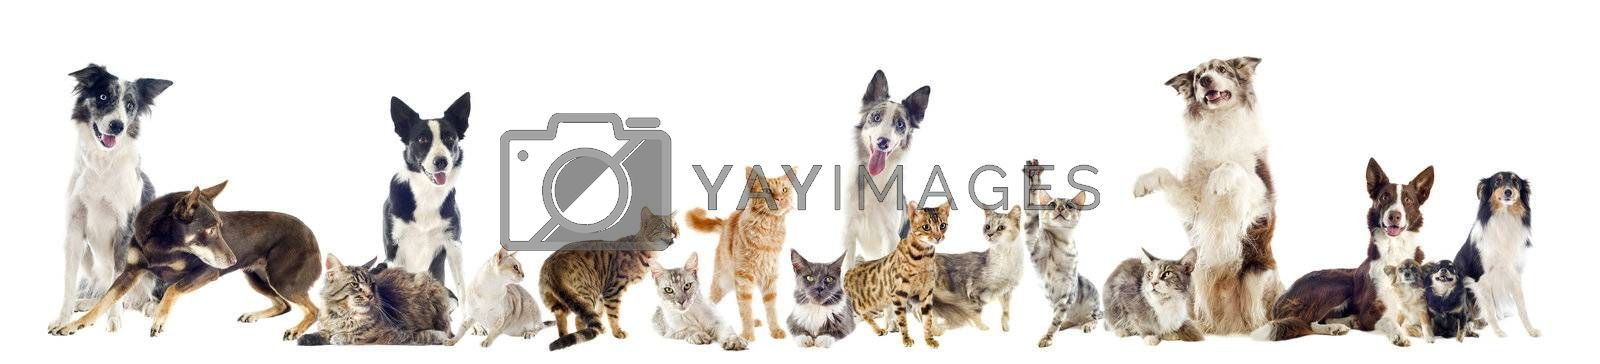 group of purebred cats  and dogs on a white background